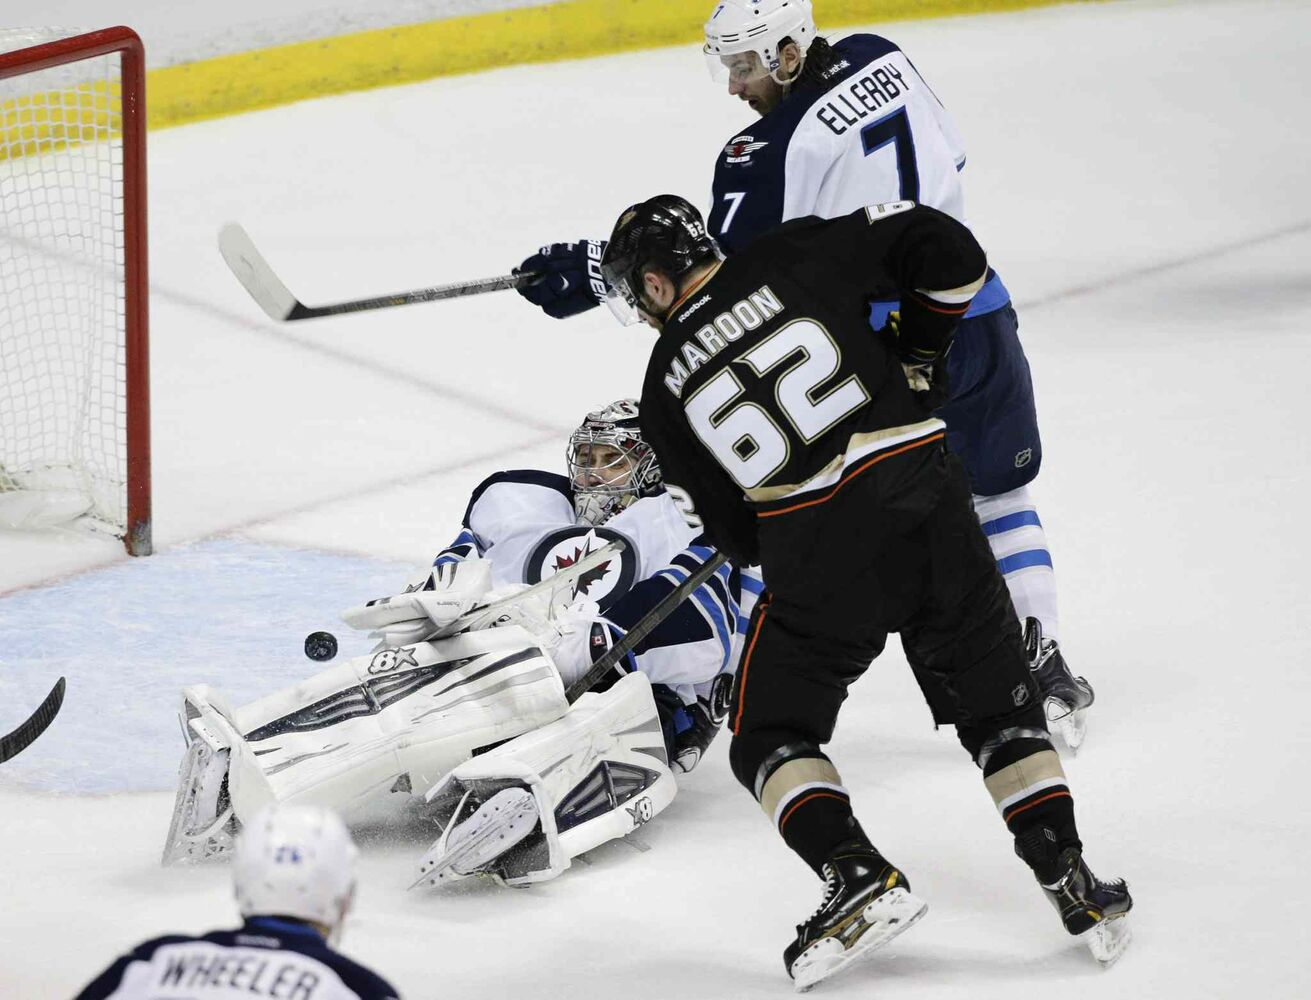 Winnipeg Jets' goalie Ondrej Pavelec, left, makes a save as Anaheim Ducks' Patrick Maroon and Winnipeg Jets' Keaton Ellerby, top, watch during the second period in Anaheim Tuesday. (Jae C. Hong / The Associated Press)